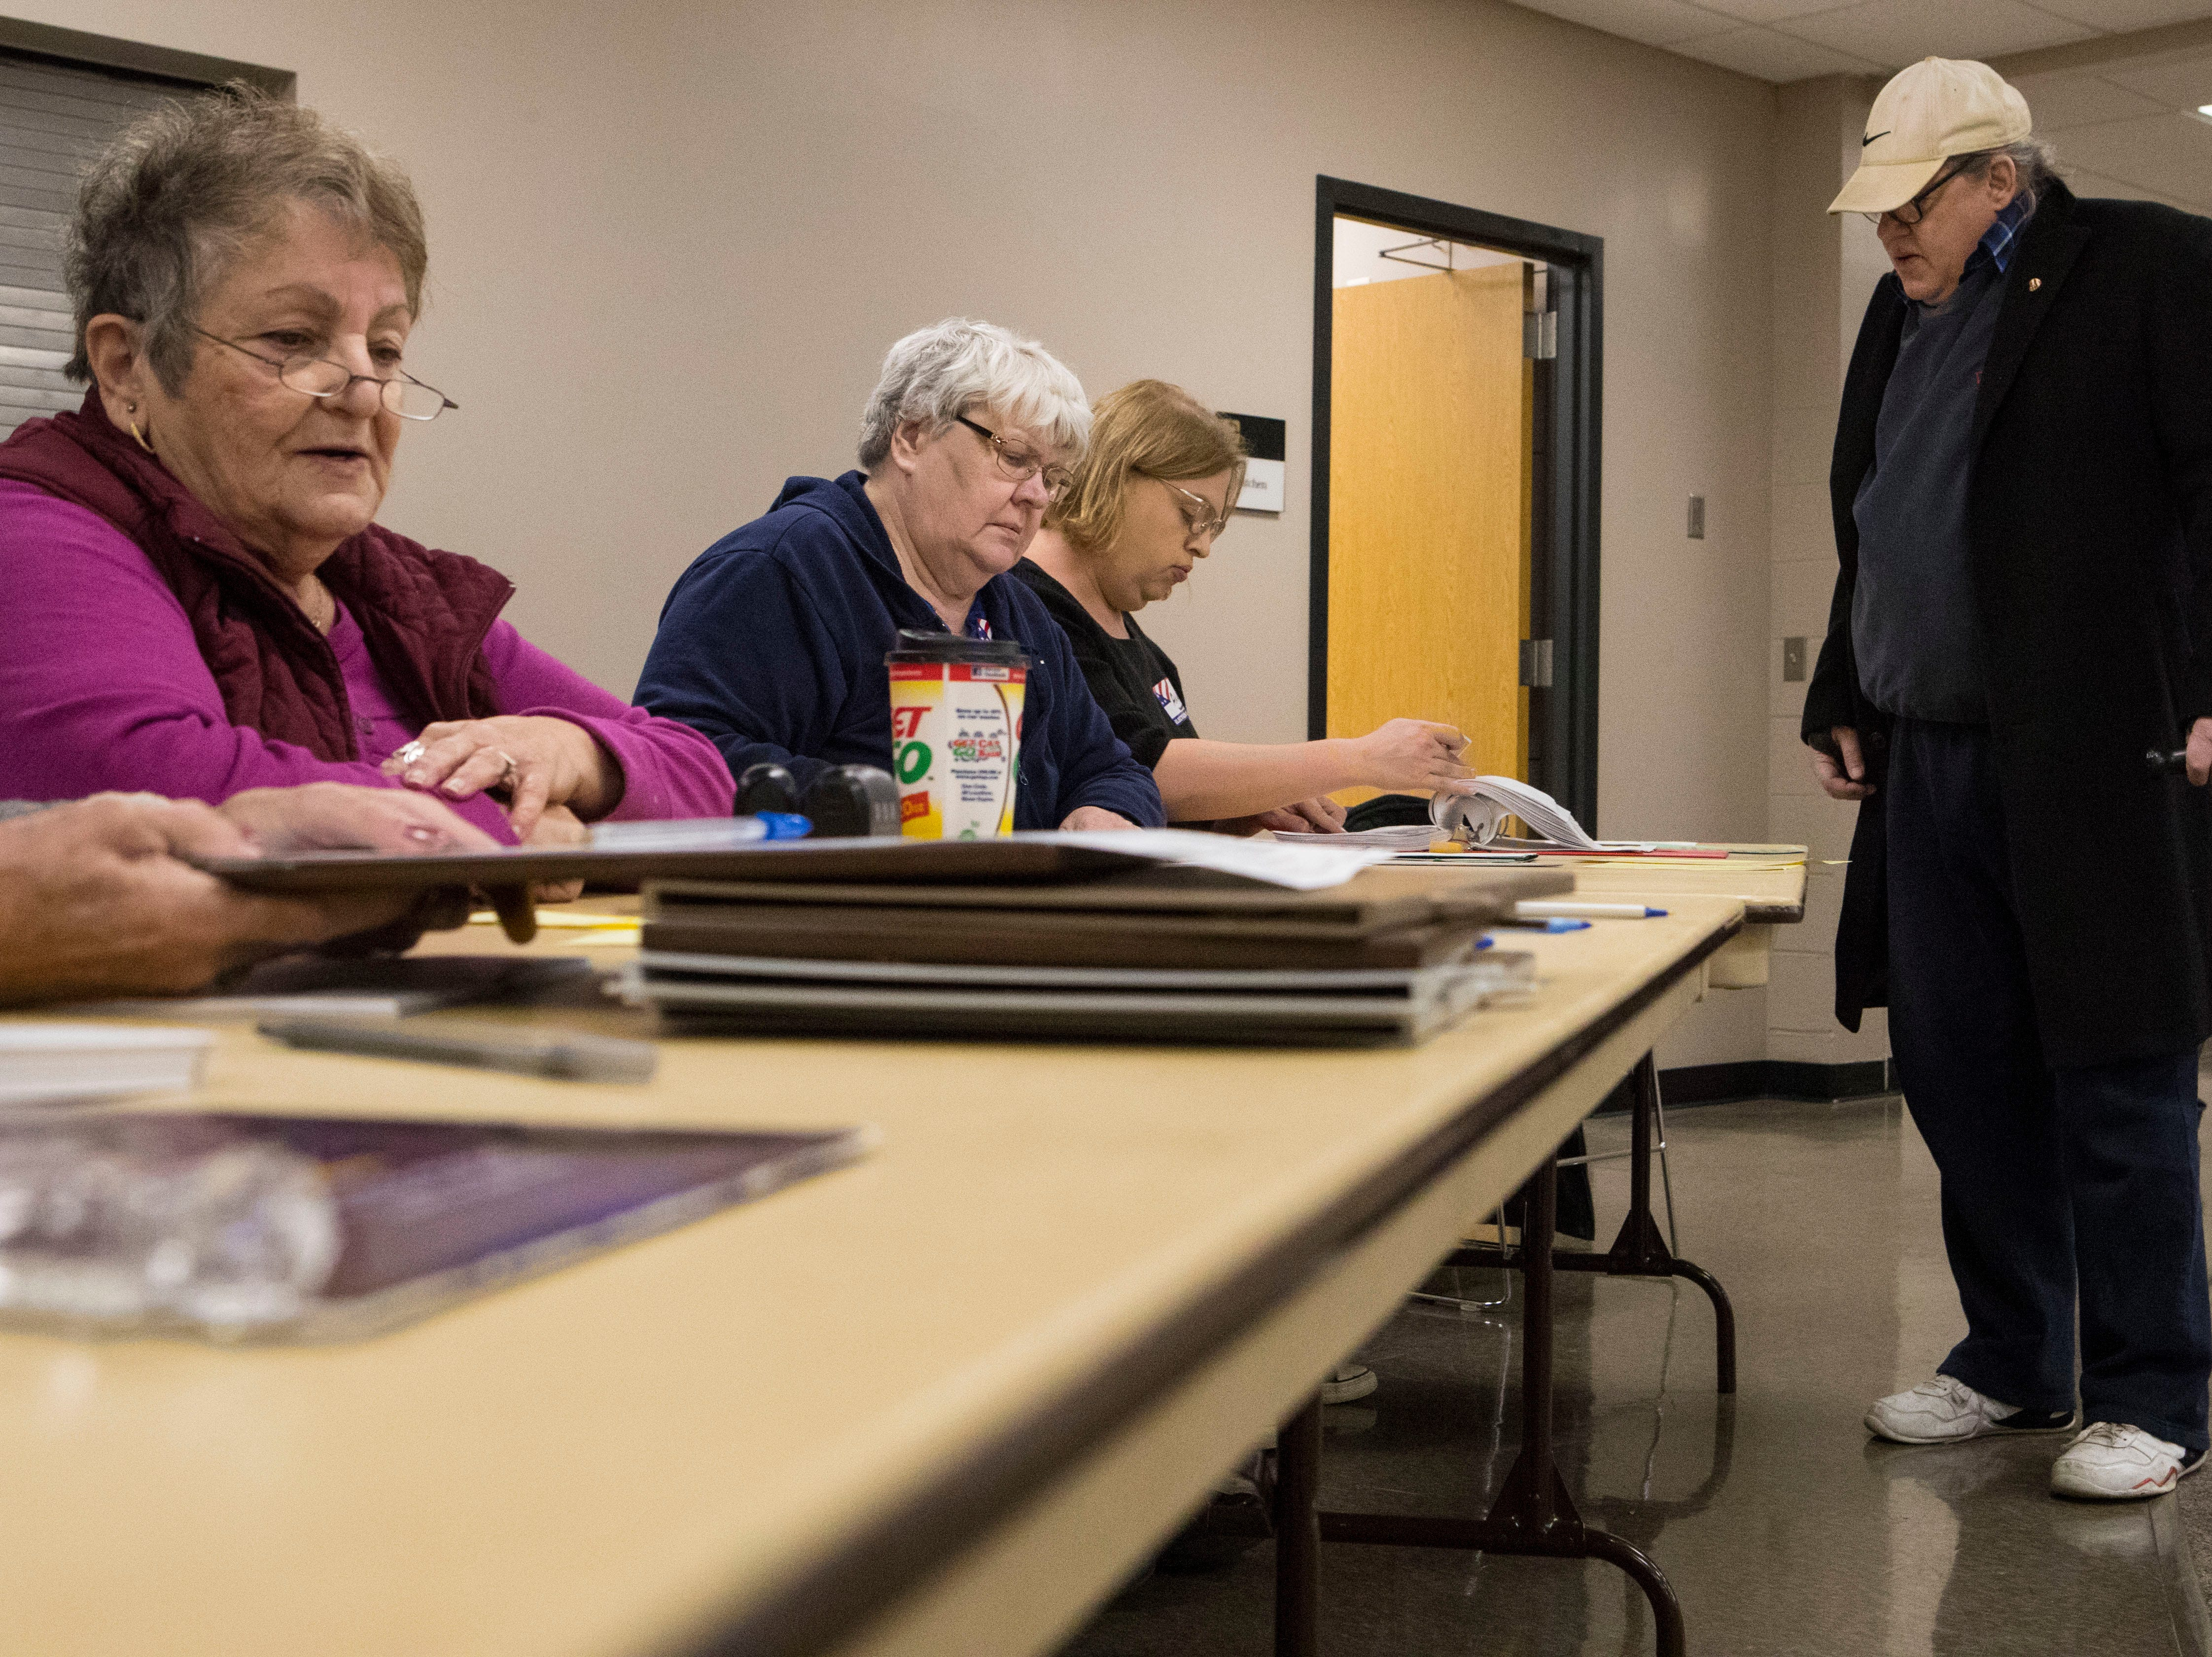 Larry Loebig gets checked in by election officials at First Lutheran Church in Sioux Falls, S.D., Tuesday, Nov. 6, 2018.